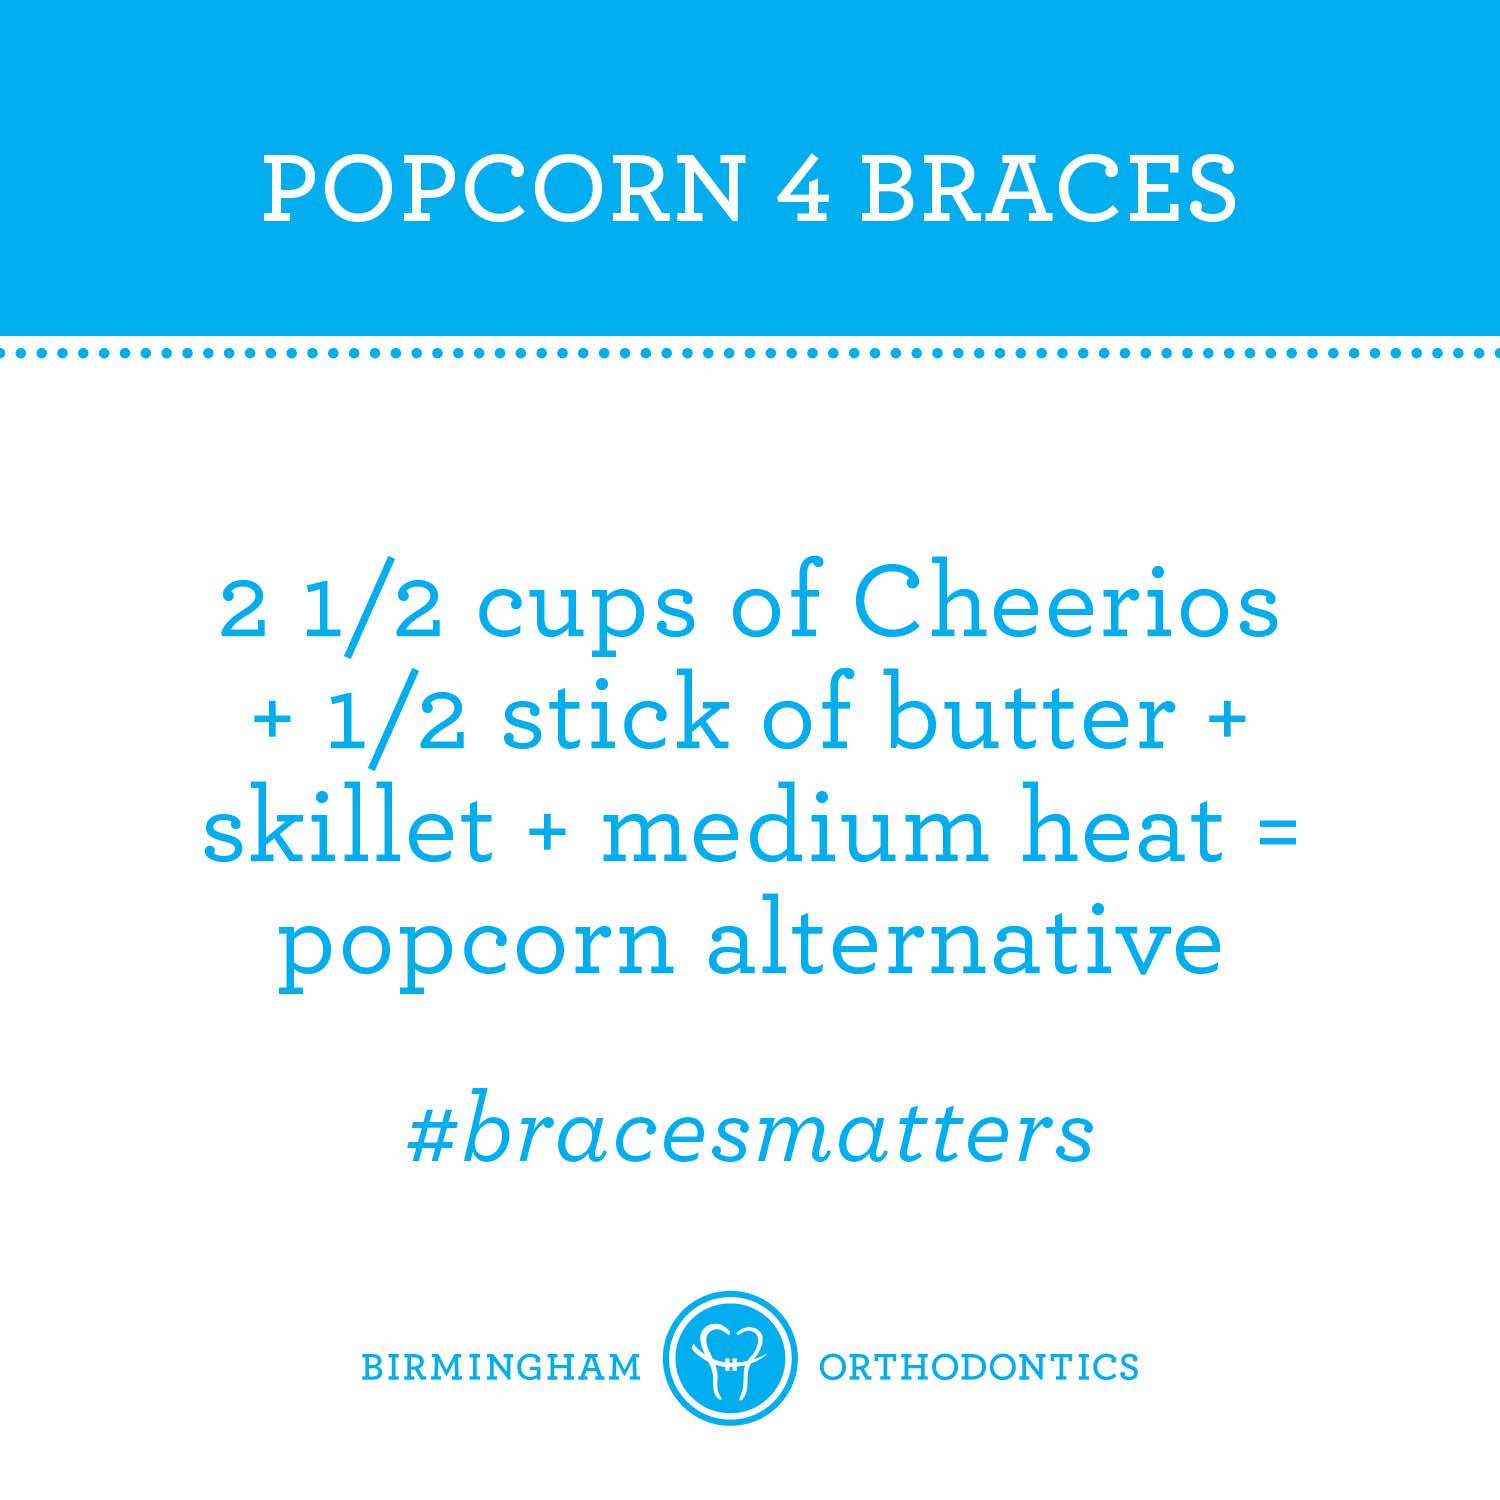 Braces Off Quotes Braces Tipssubstitute Popcorn For Braces  It's A Thing